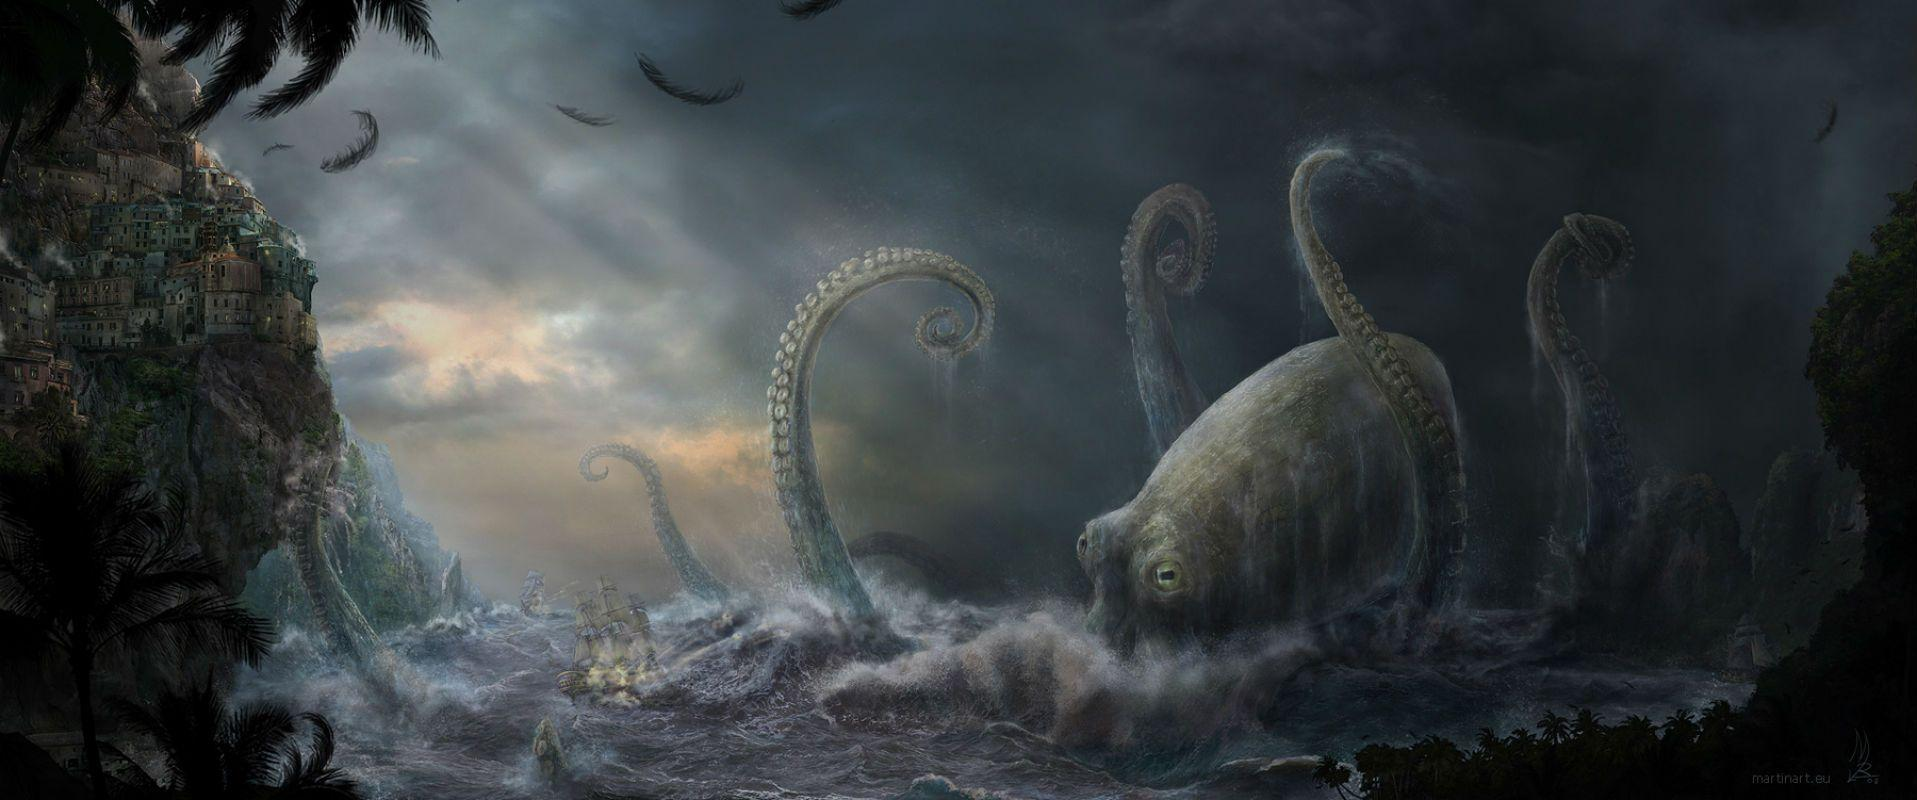 Cthulhu Computer Wallpapers, Desktop Backgrounds 1917x800 Id: 236514